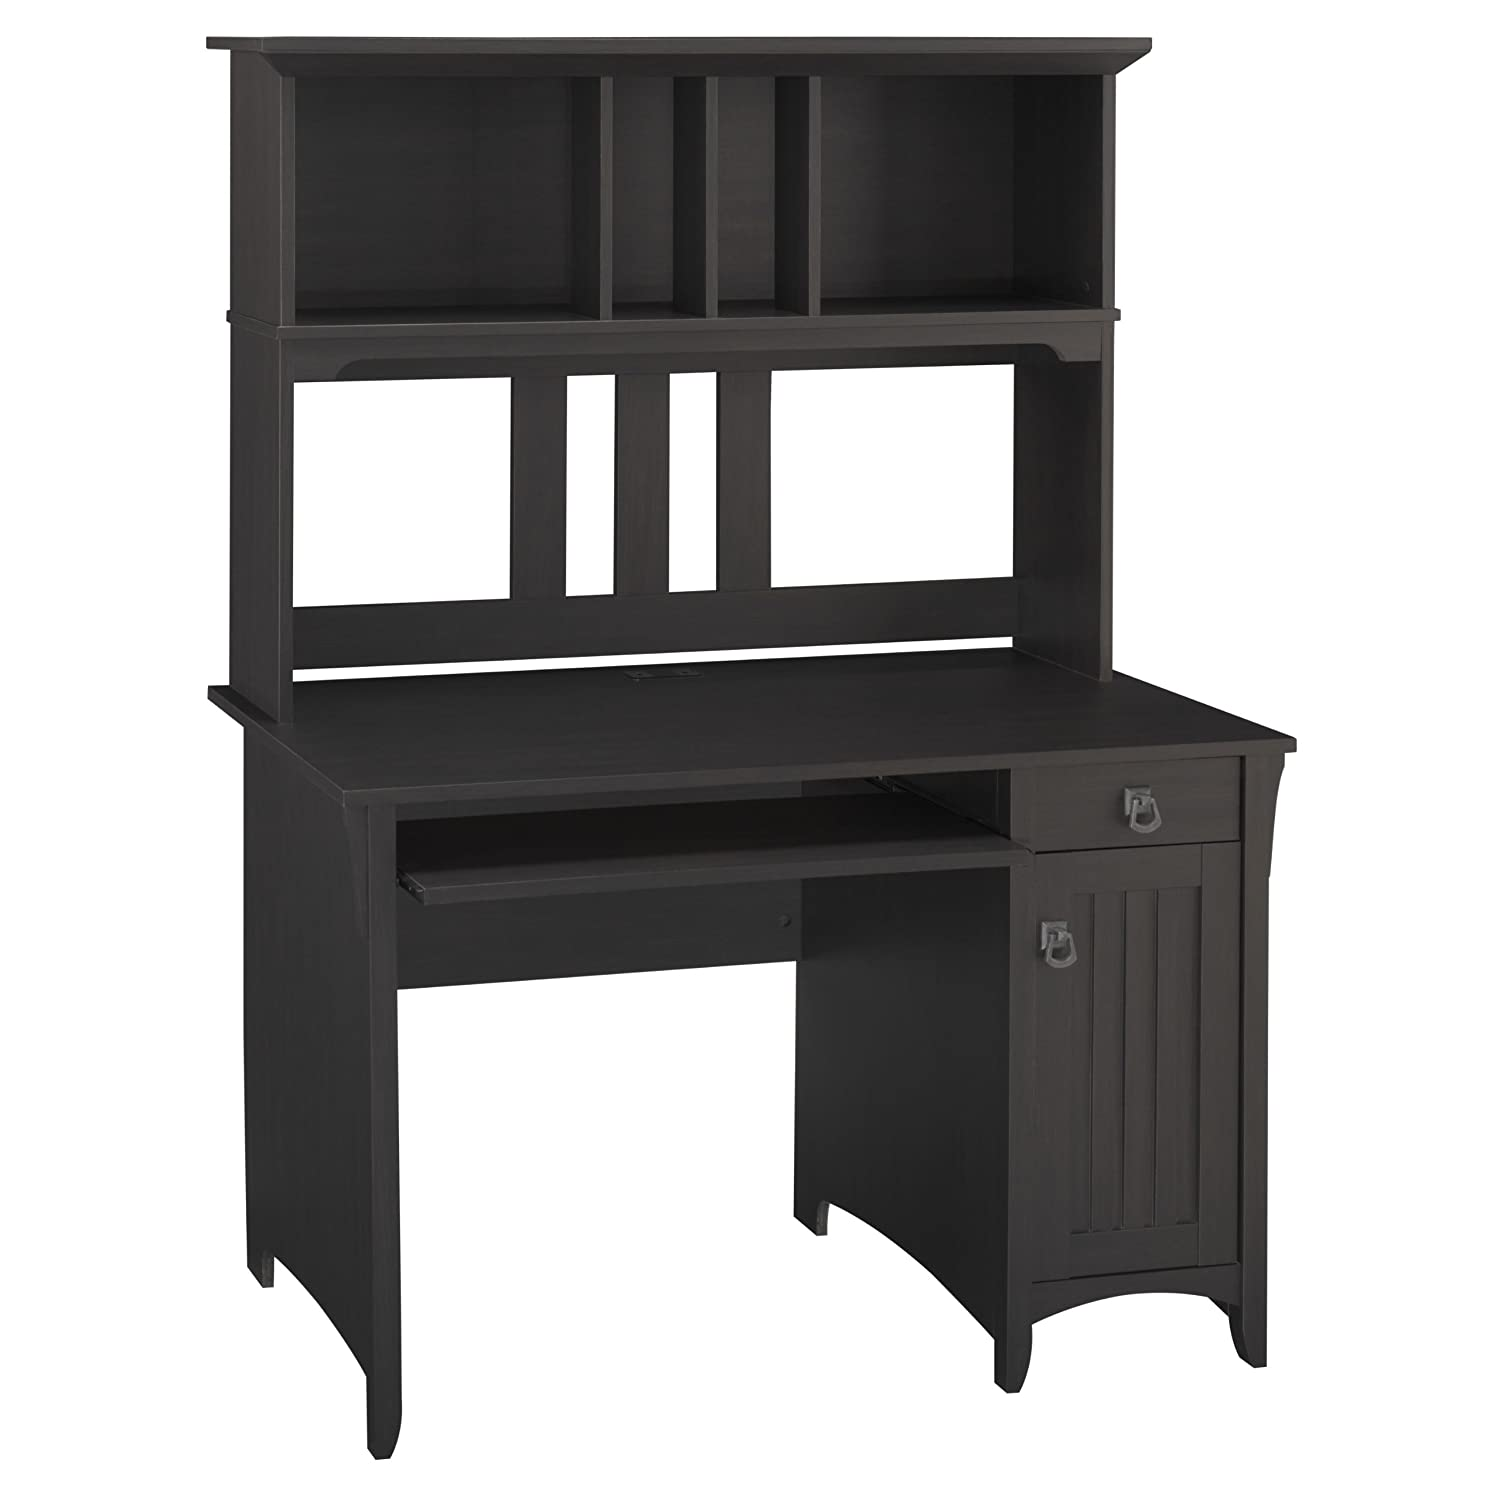 amazoncom salinas collection mission desk hutch kitchen dining bush desk hutch office